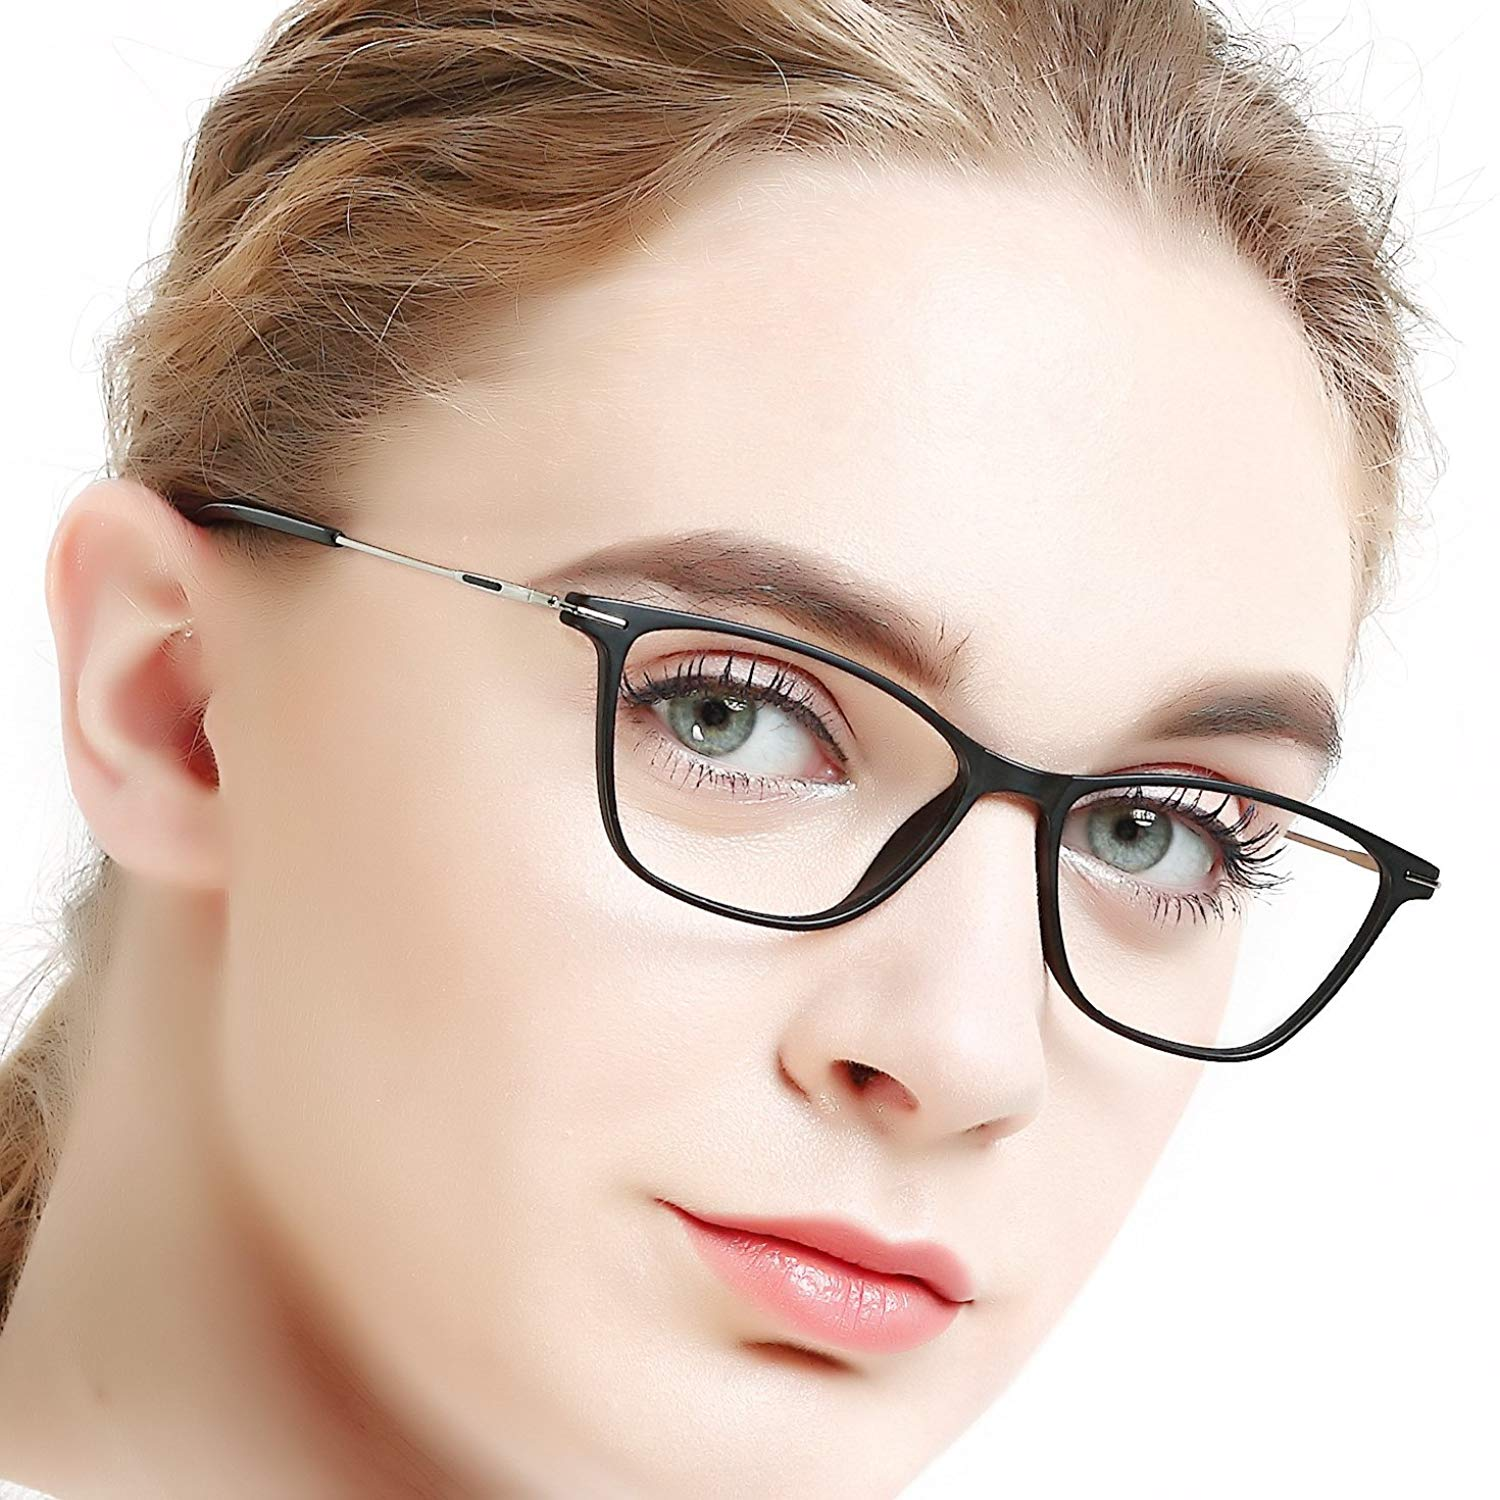 94f7404de82 Get Quotations · Eyewear Frames-OCCI CHIARI-Rectangle Lightweight Non-Prescription  Eyeglasses Frame with Clear Lenses